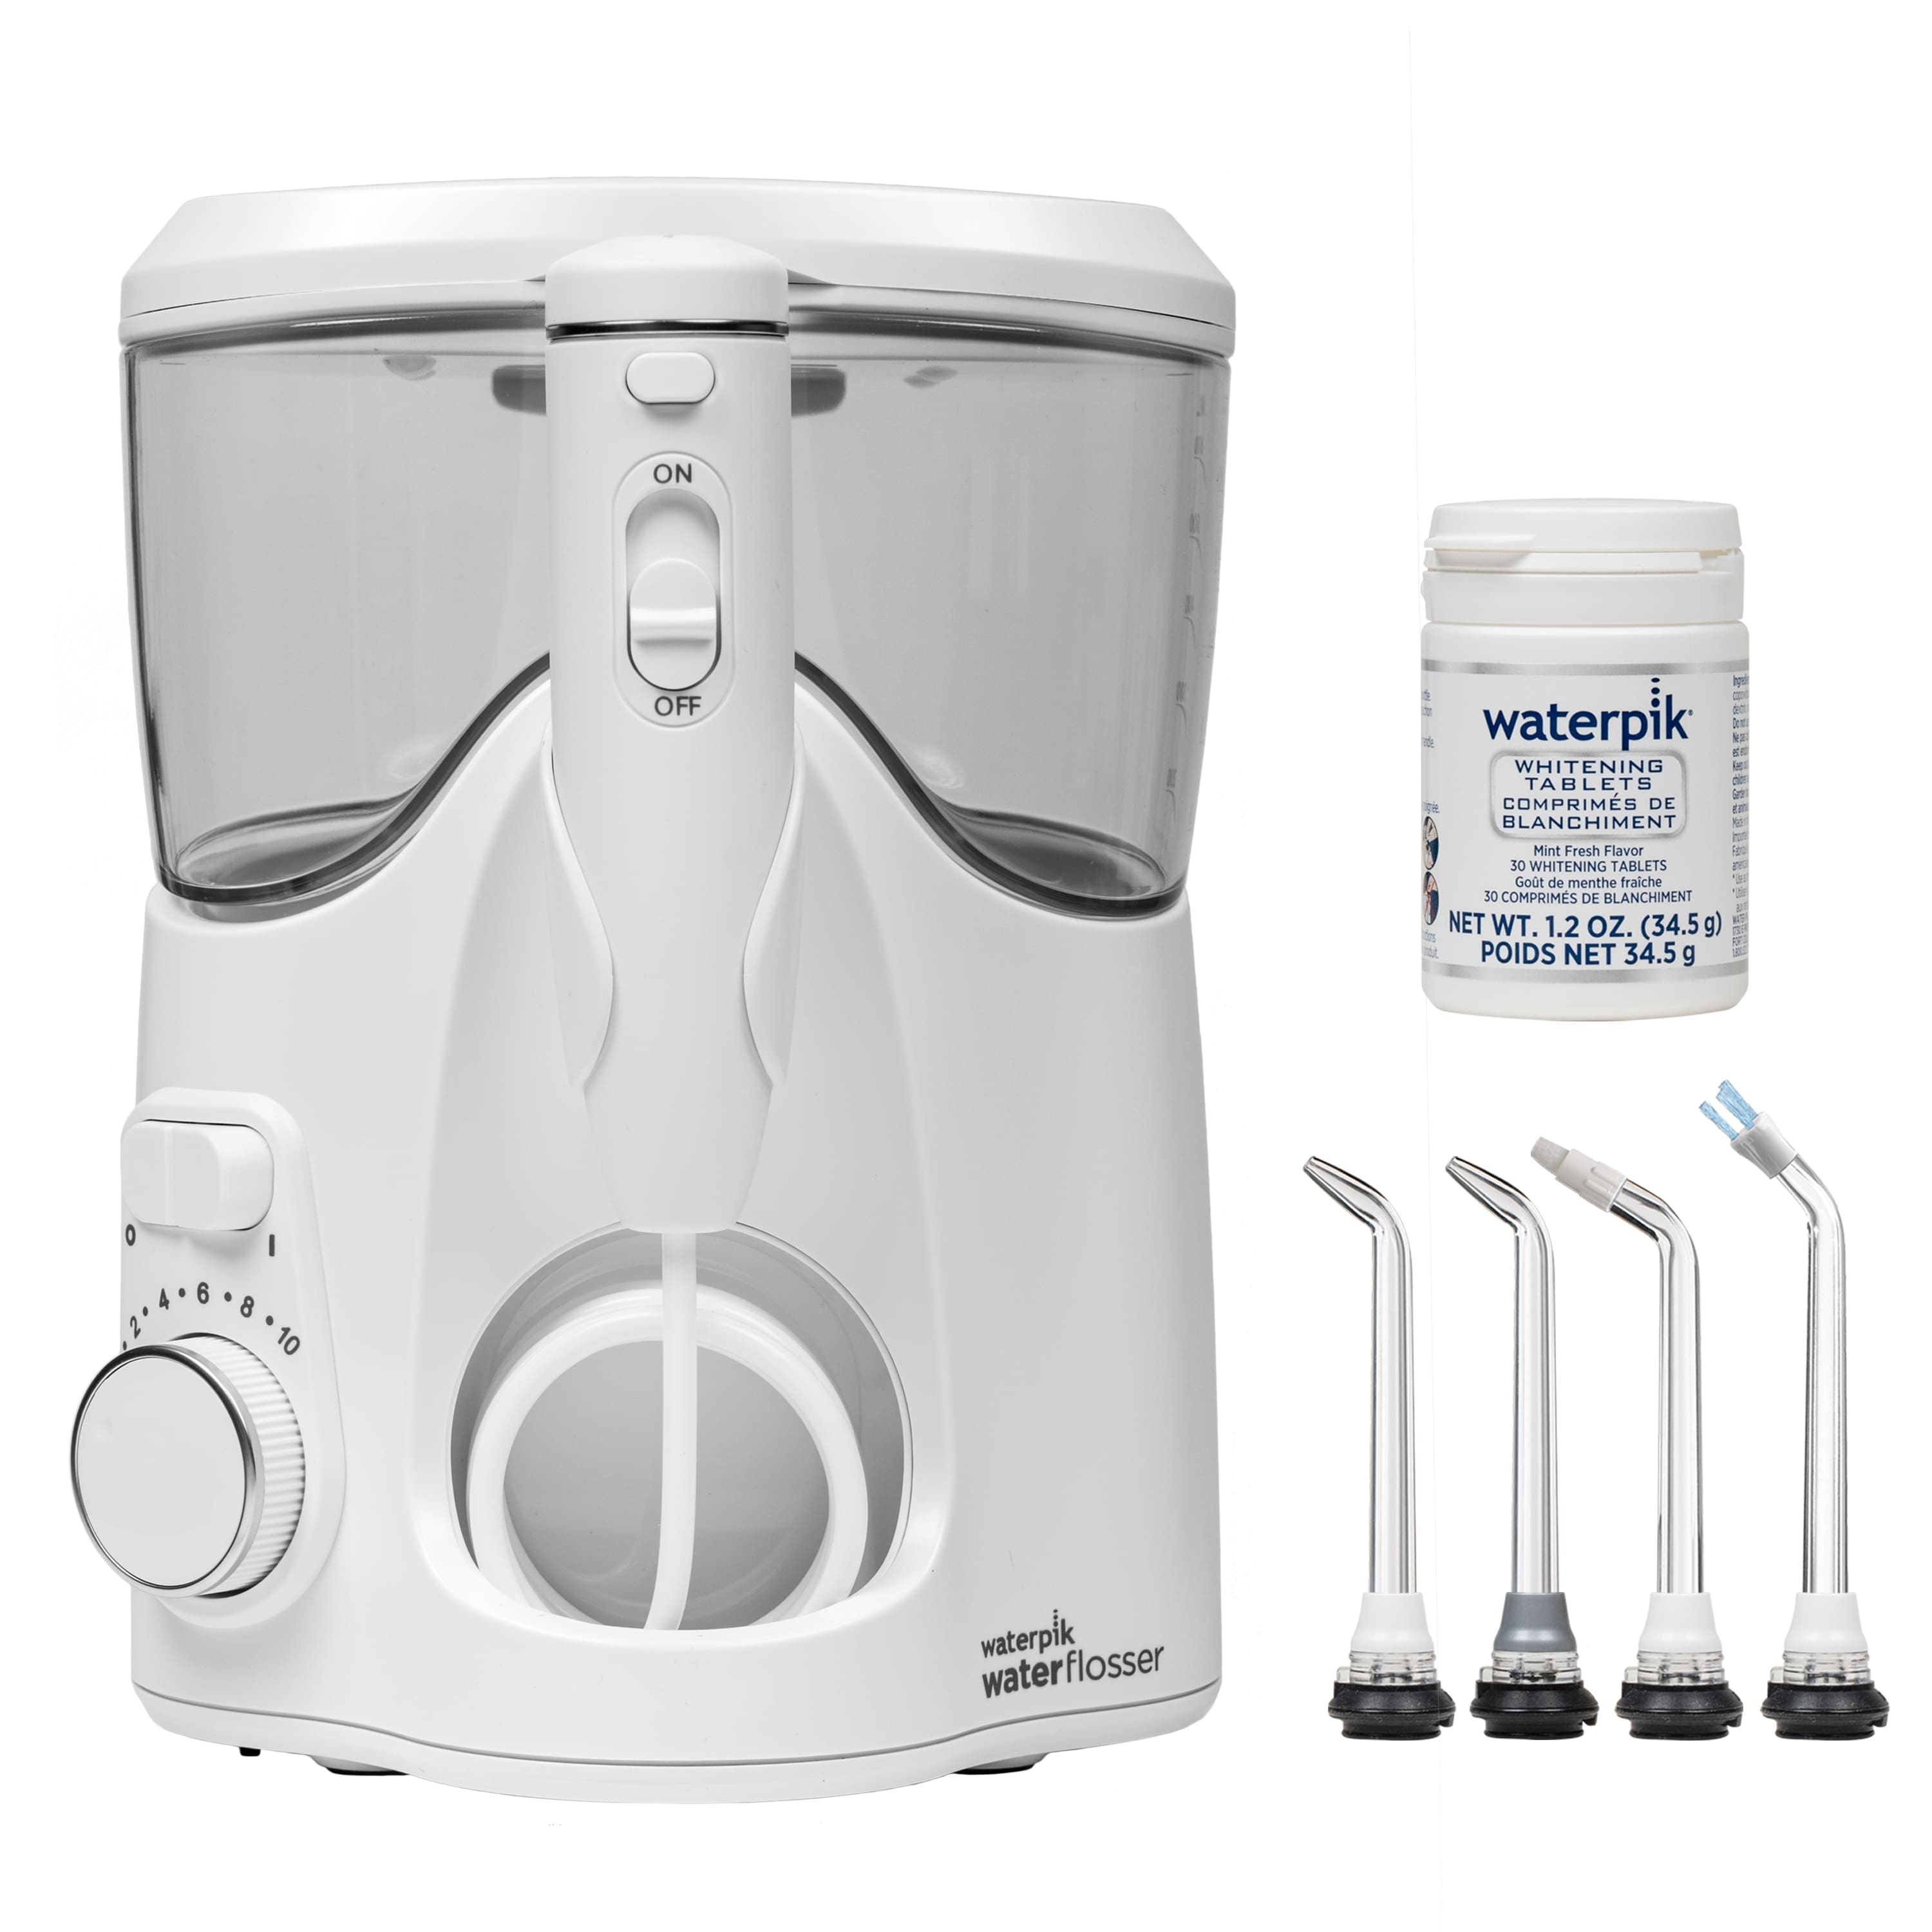 Waterpik Whitening Countertop Water Flosser, WF-06 $35.99